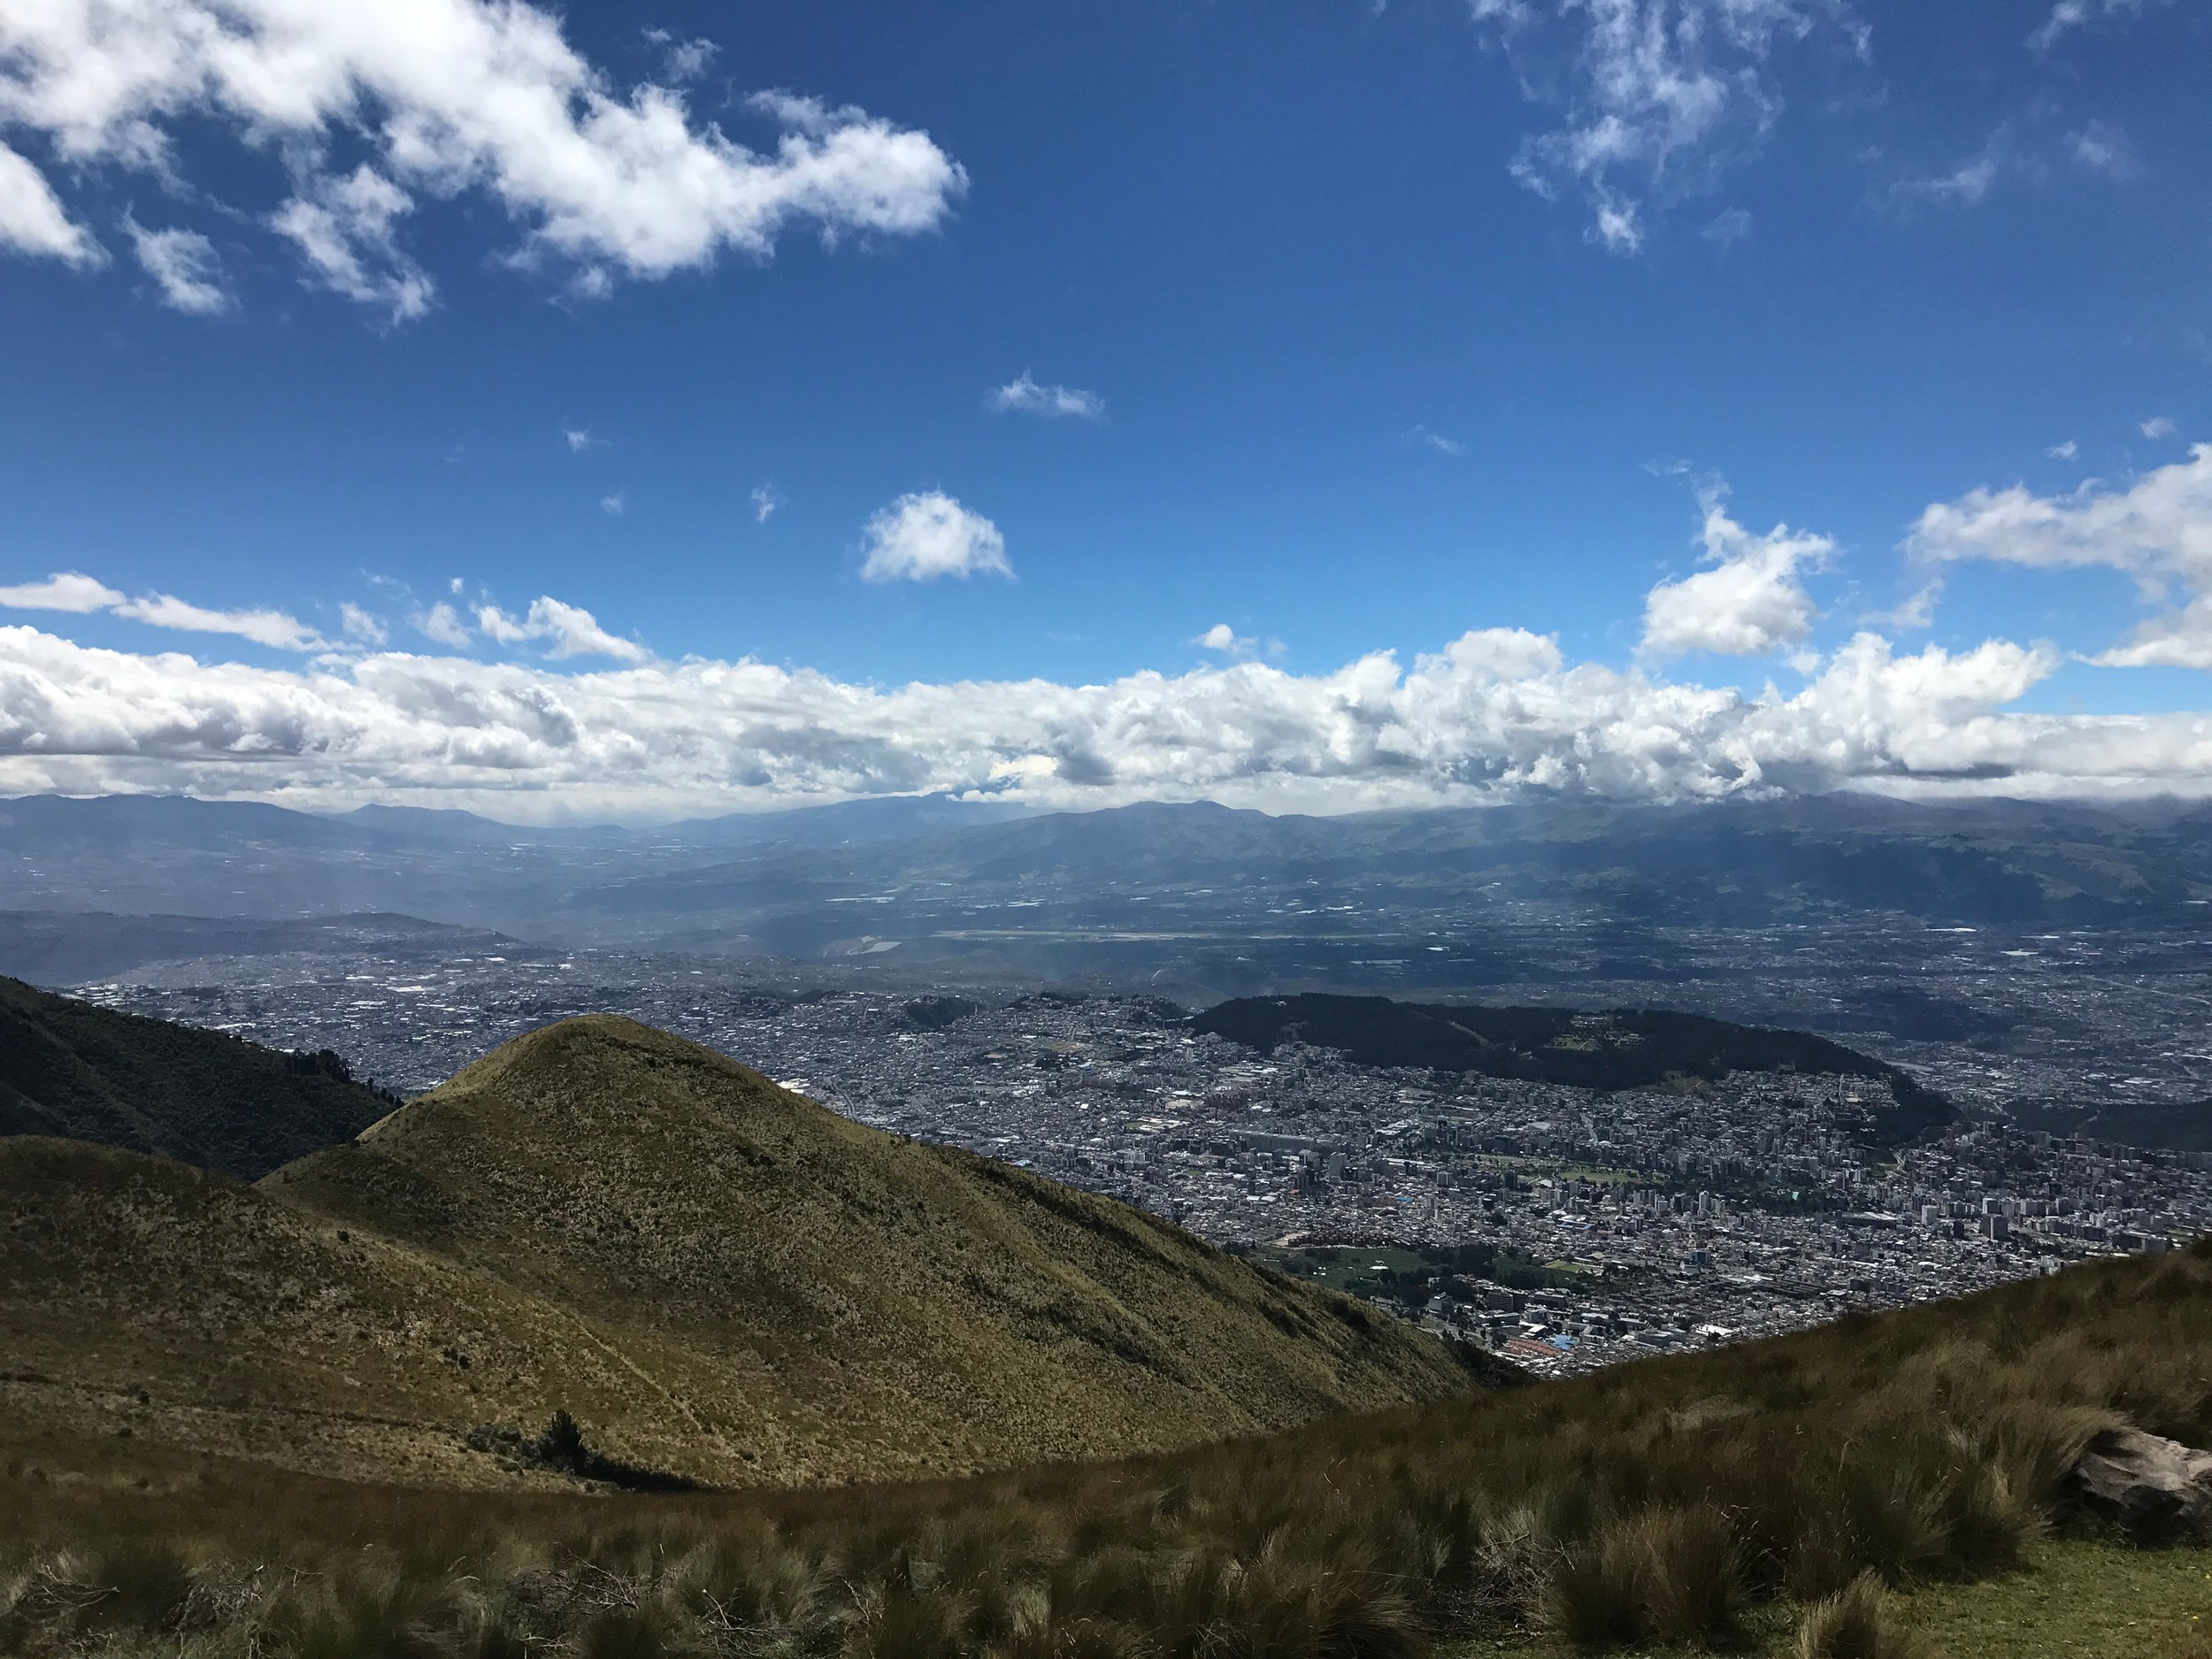 View of the City from the TeleferiQo